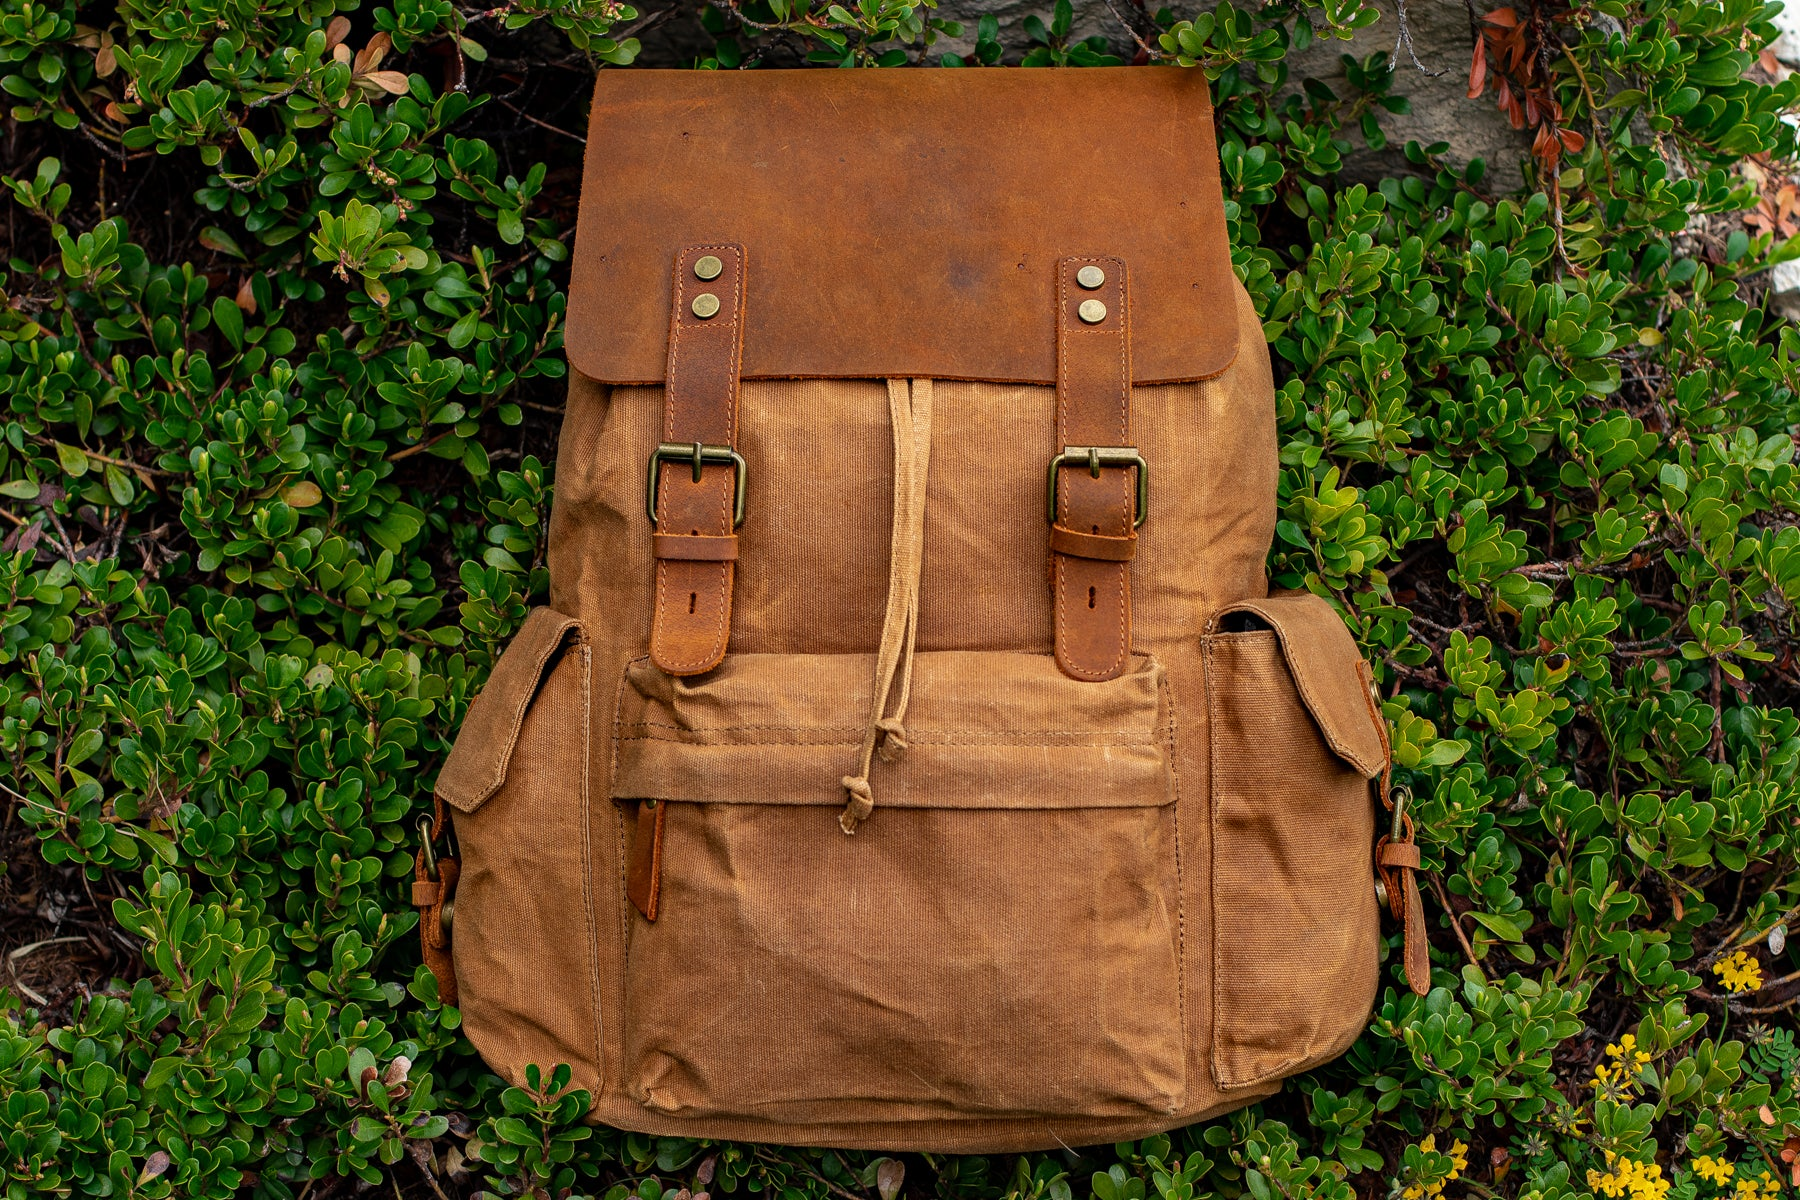 A waxed canvas backpack in khaki colors sitting on a field of wild grass